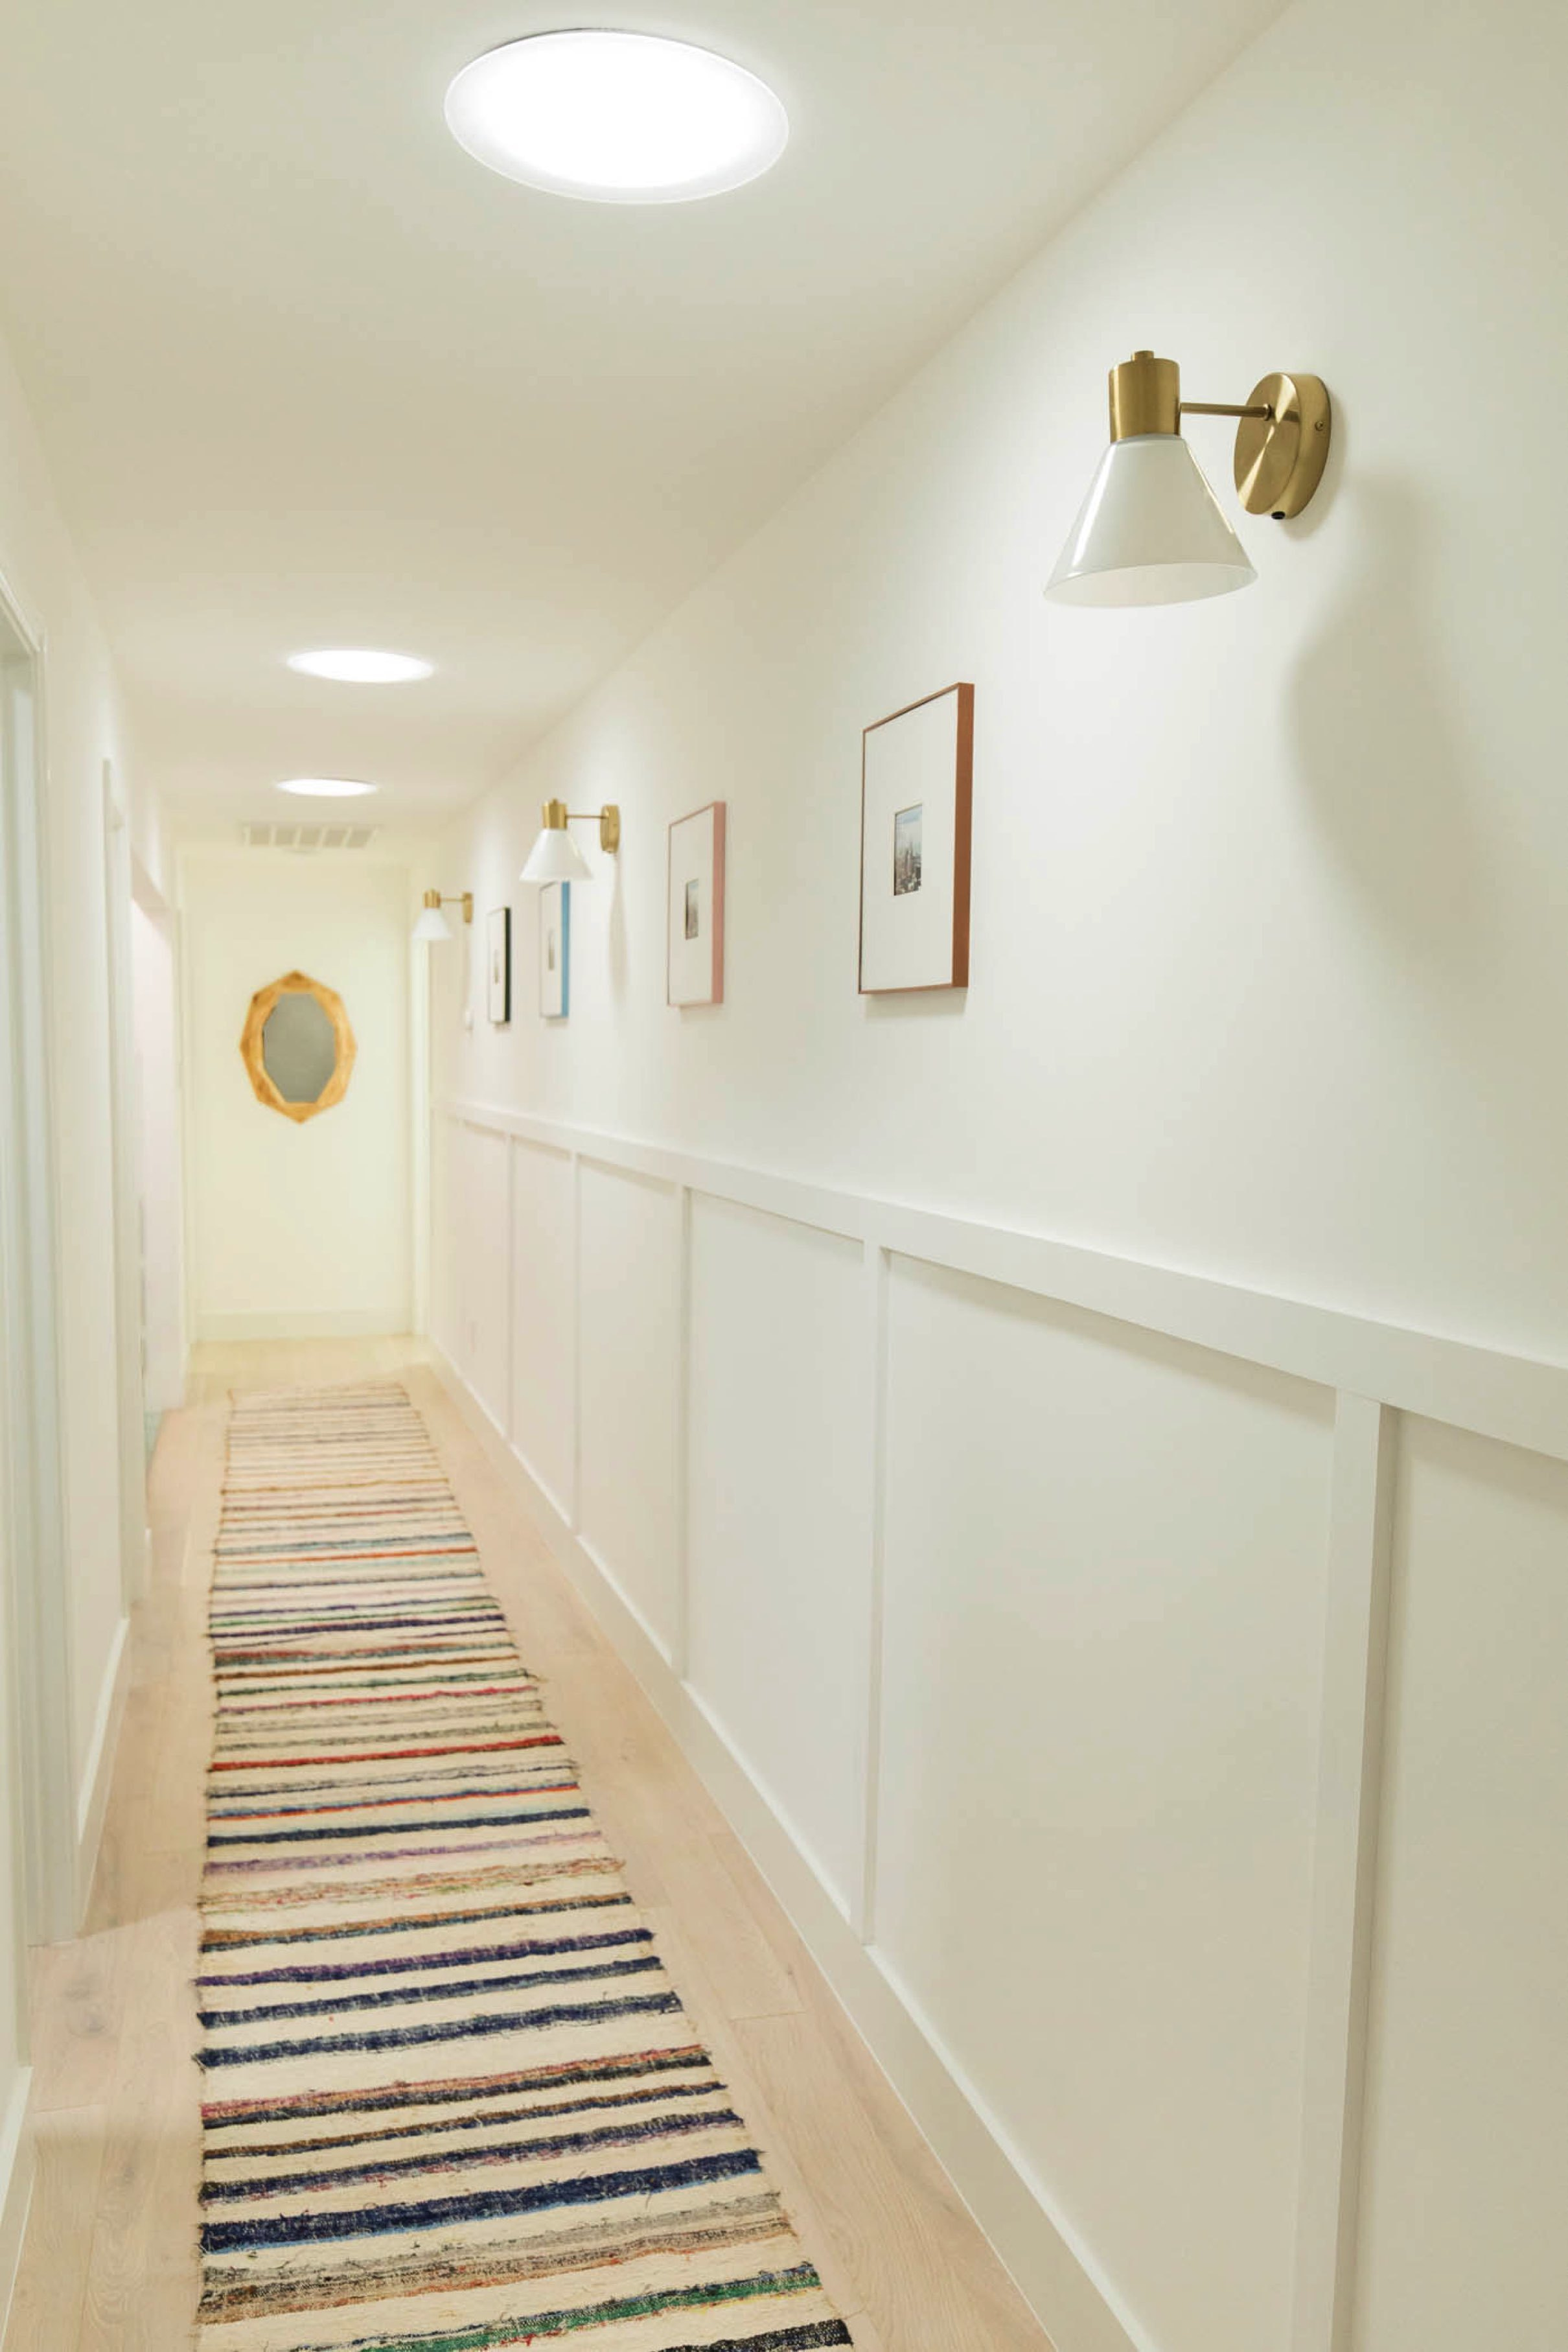 Hallway with three sun tunnel skylights, a striped runner rug and decorative wall panels